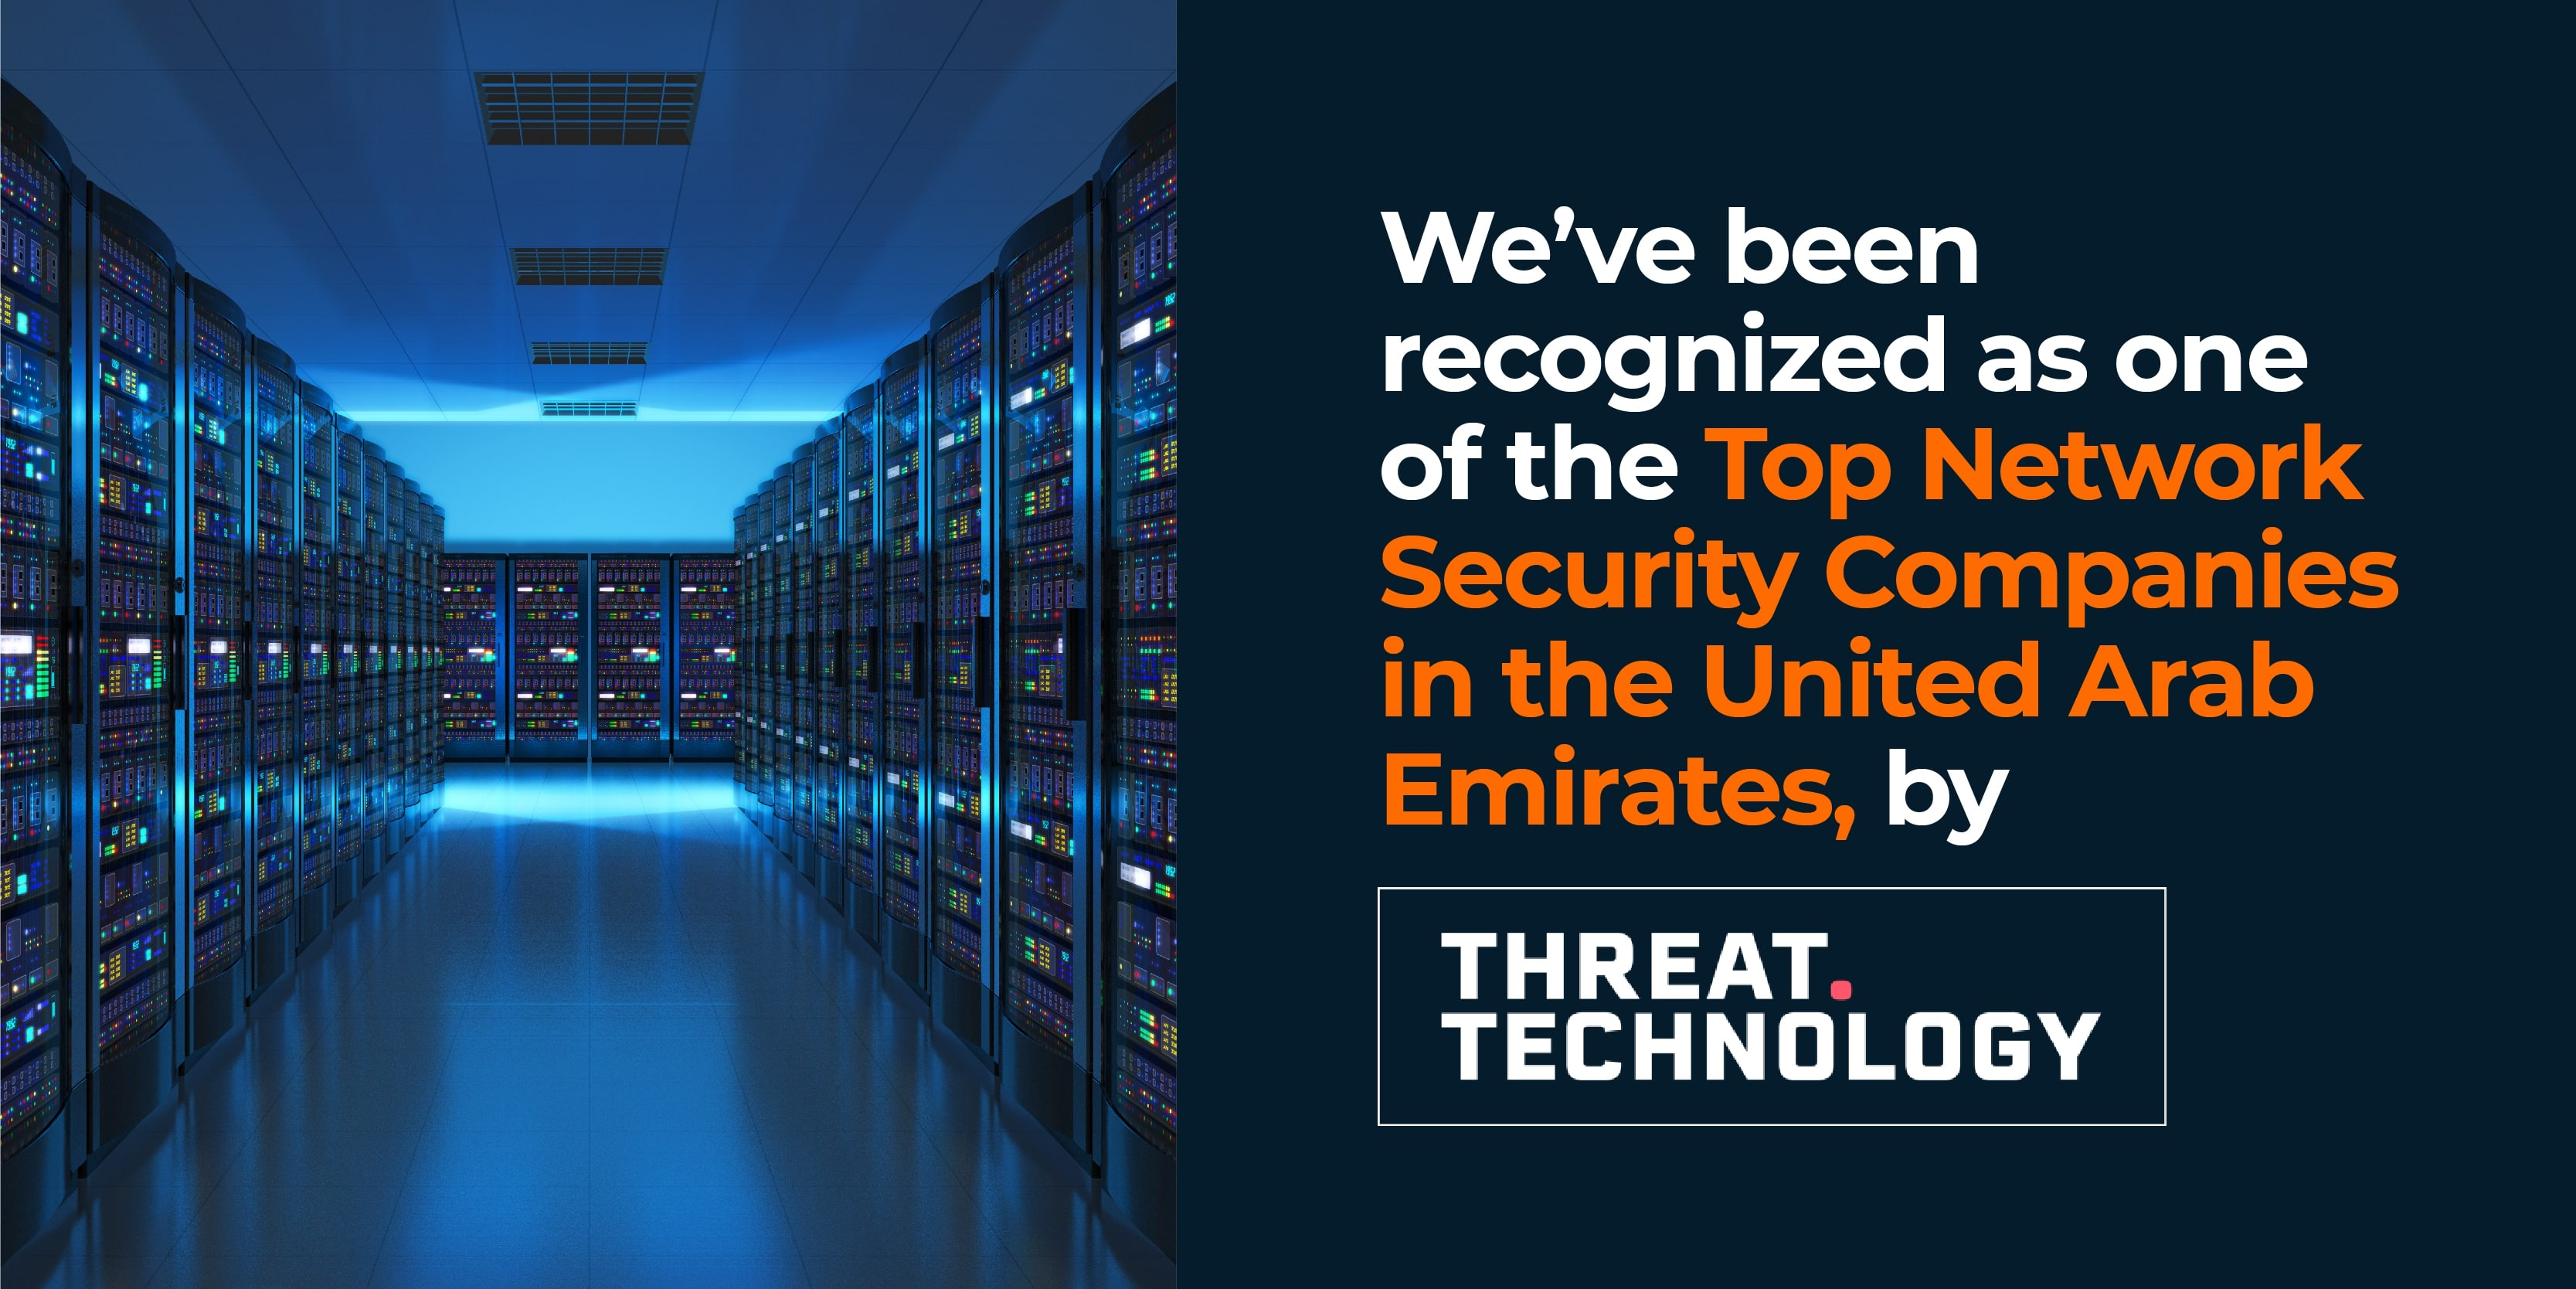 ITSEC, Recognized as One to The Top Network Security Companies In UAE